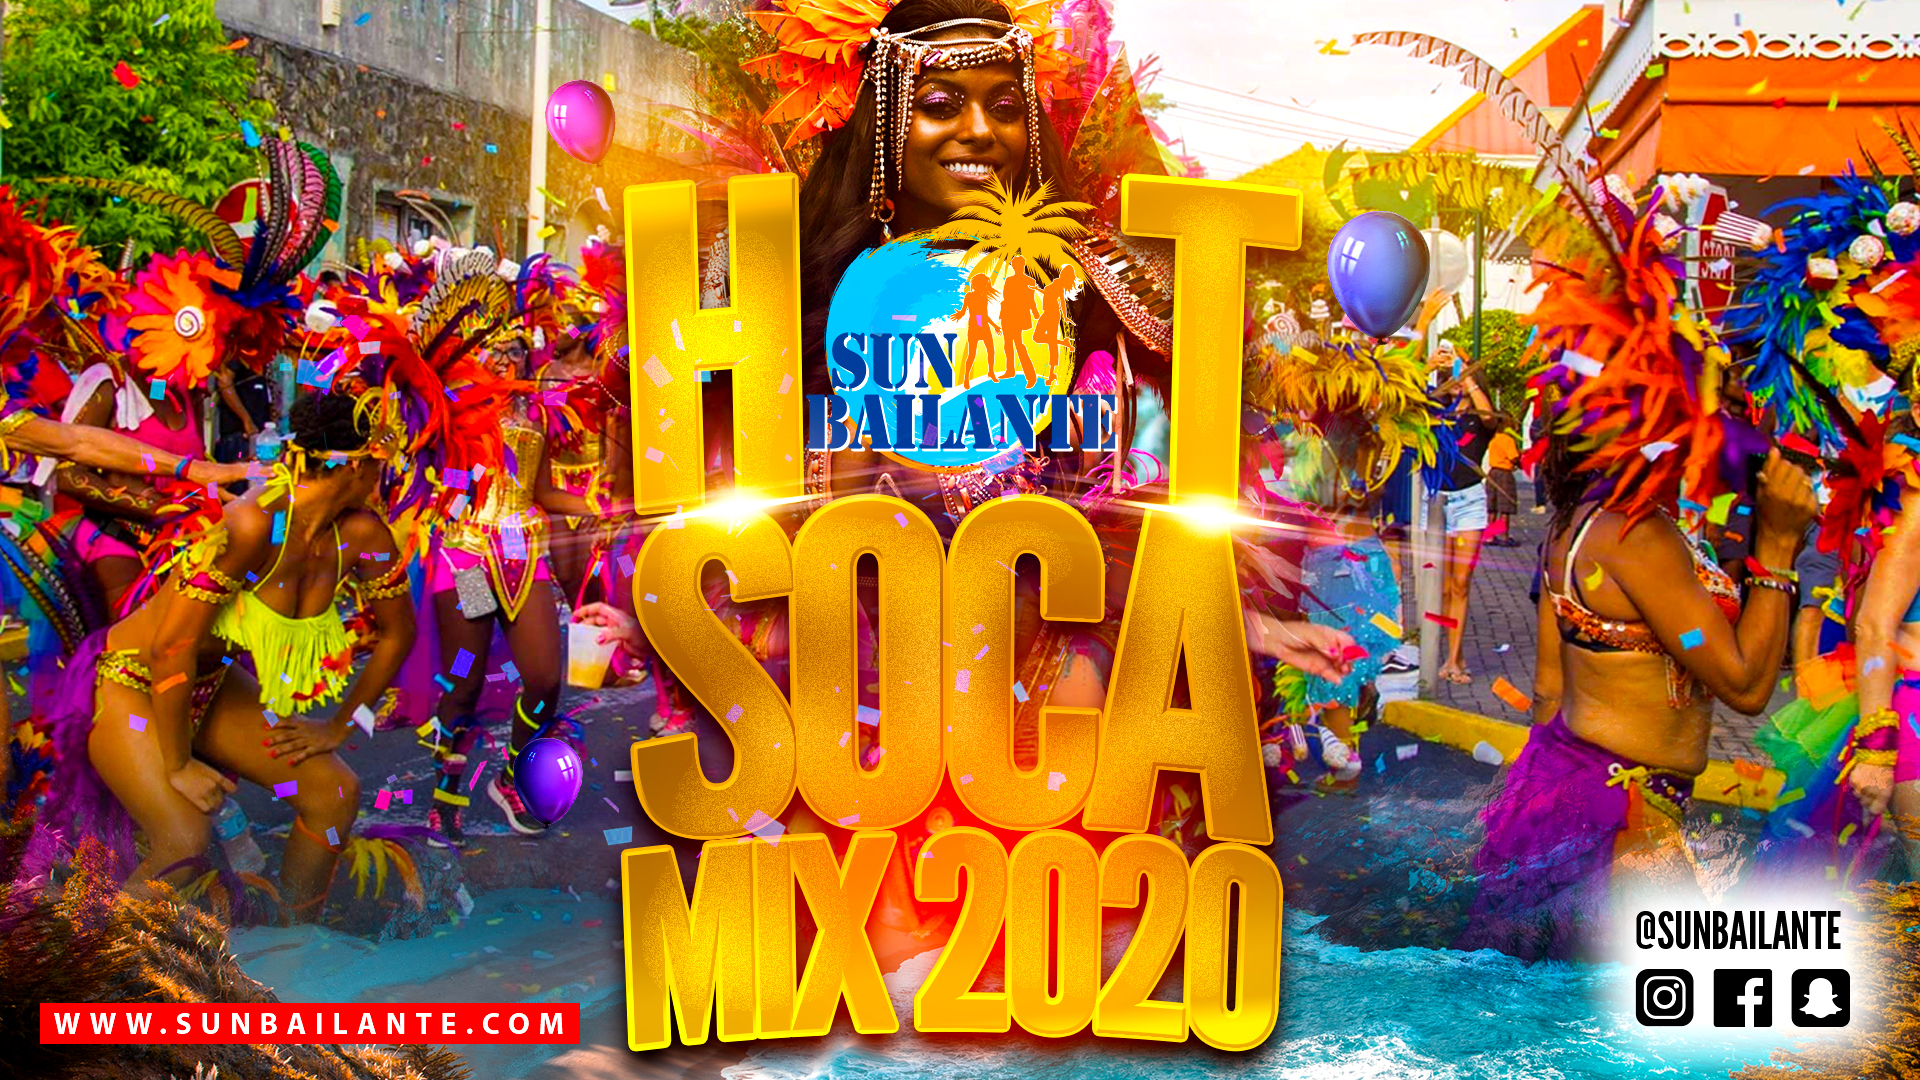 Hot Soca Mix 2020 - Trinidad & Tobago Carnival Music 2020